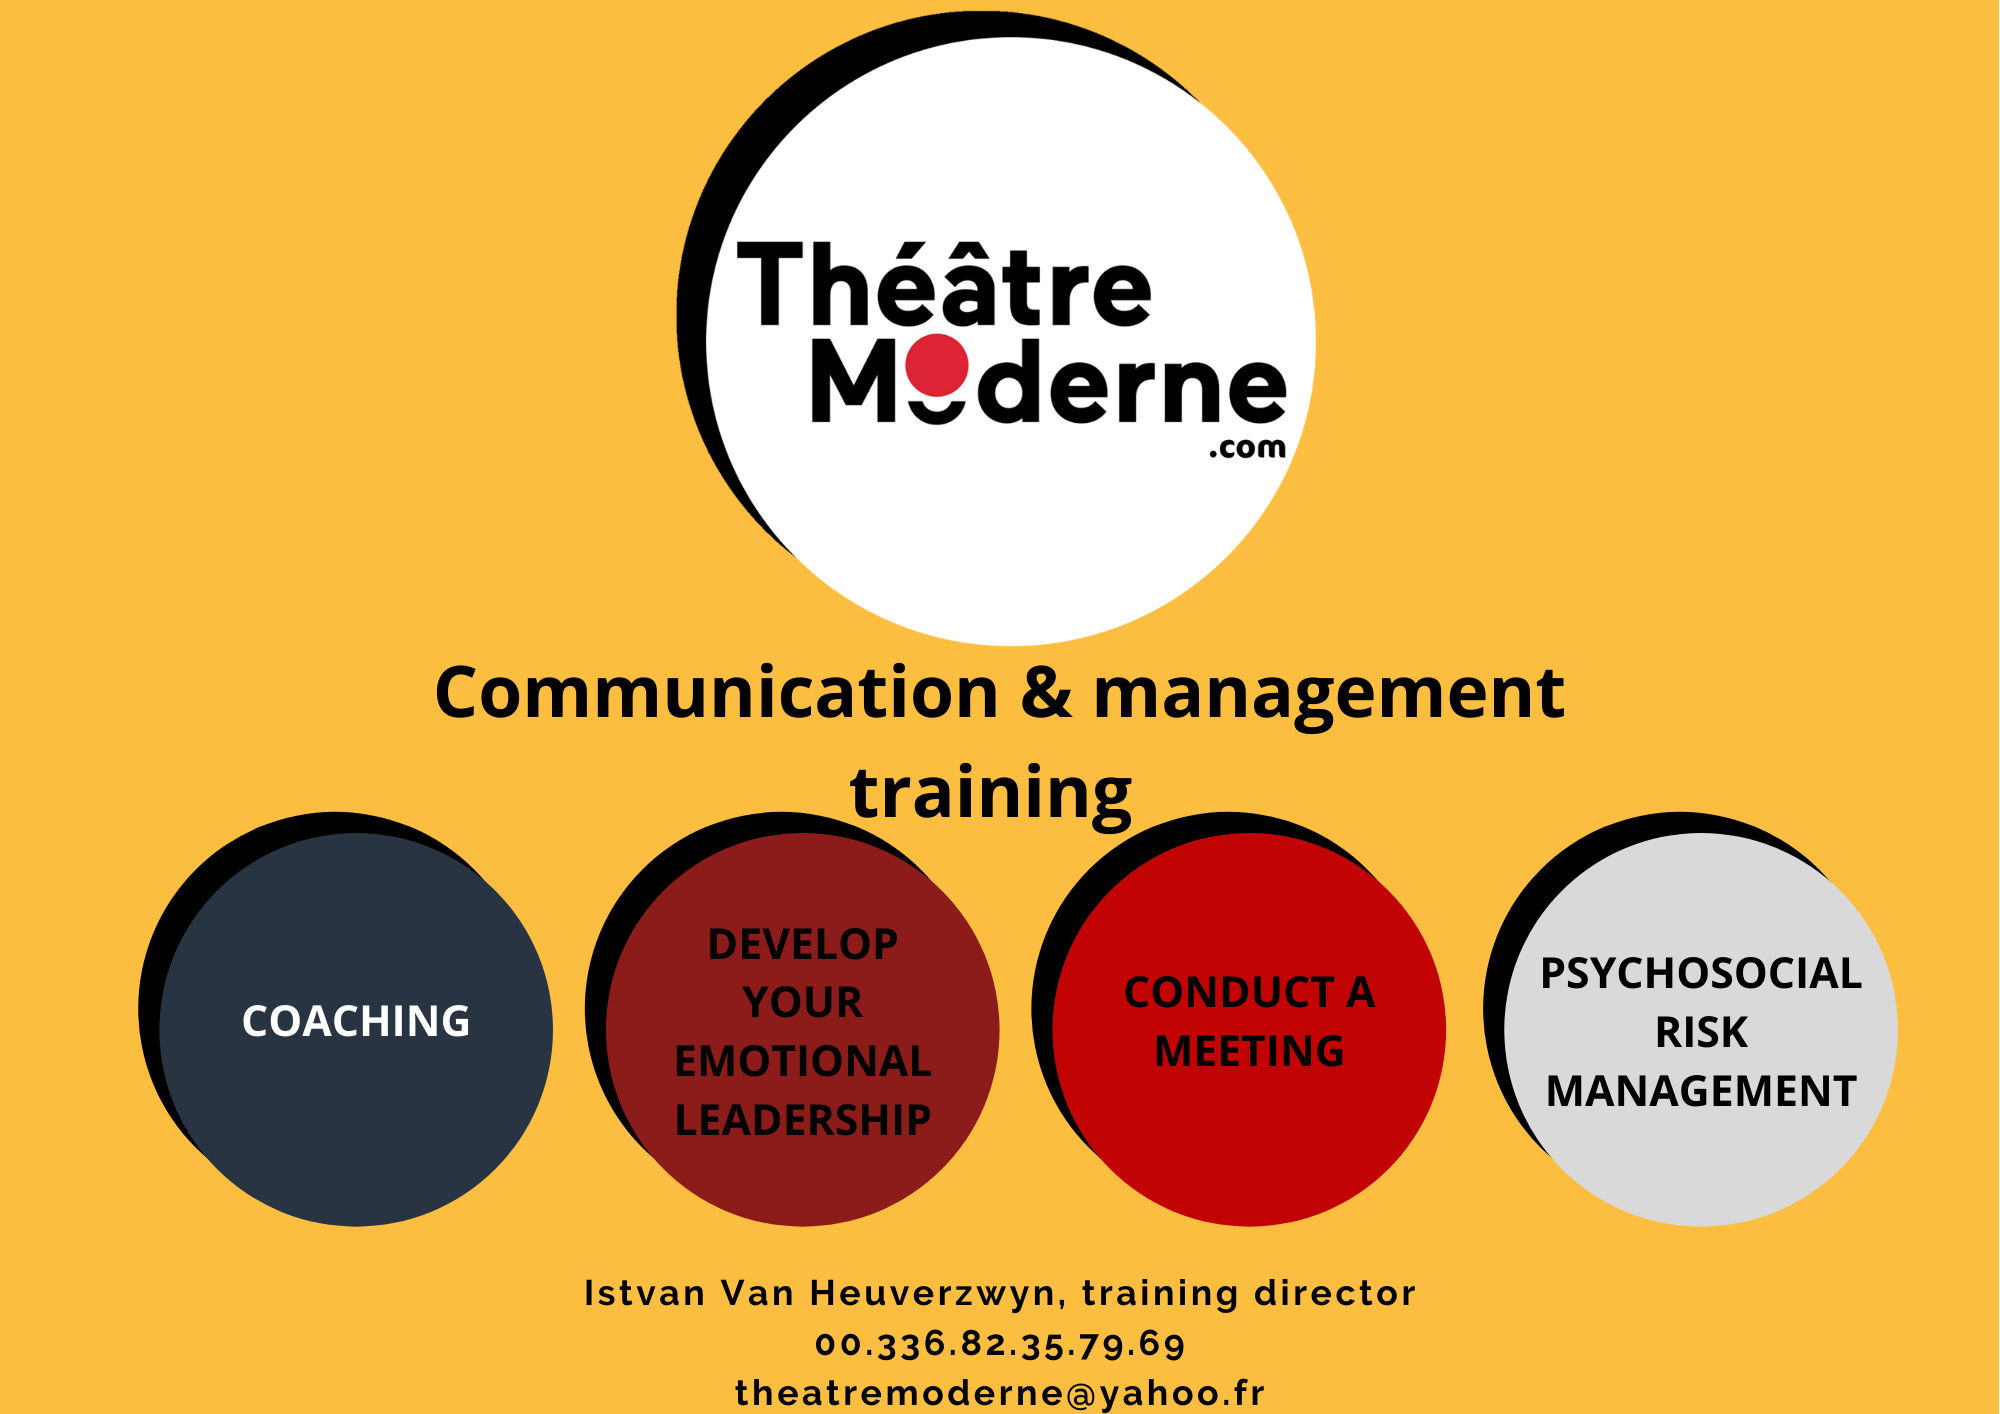 3 - Registration, quote, communication and management training